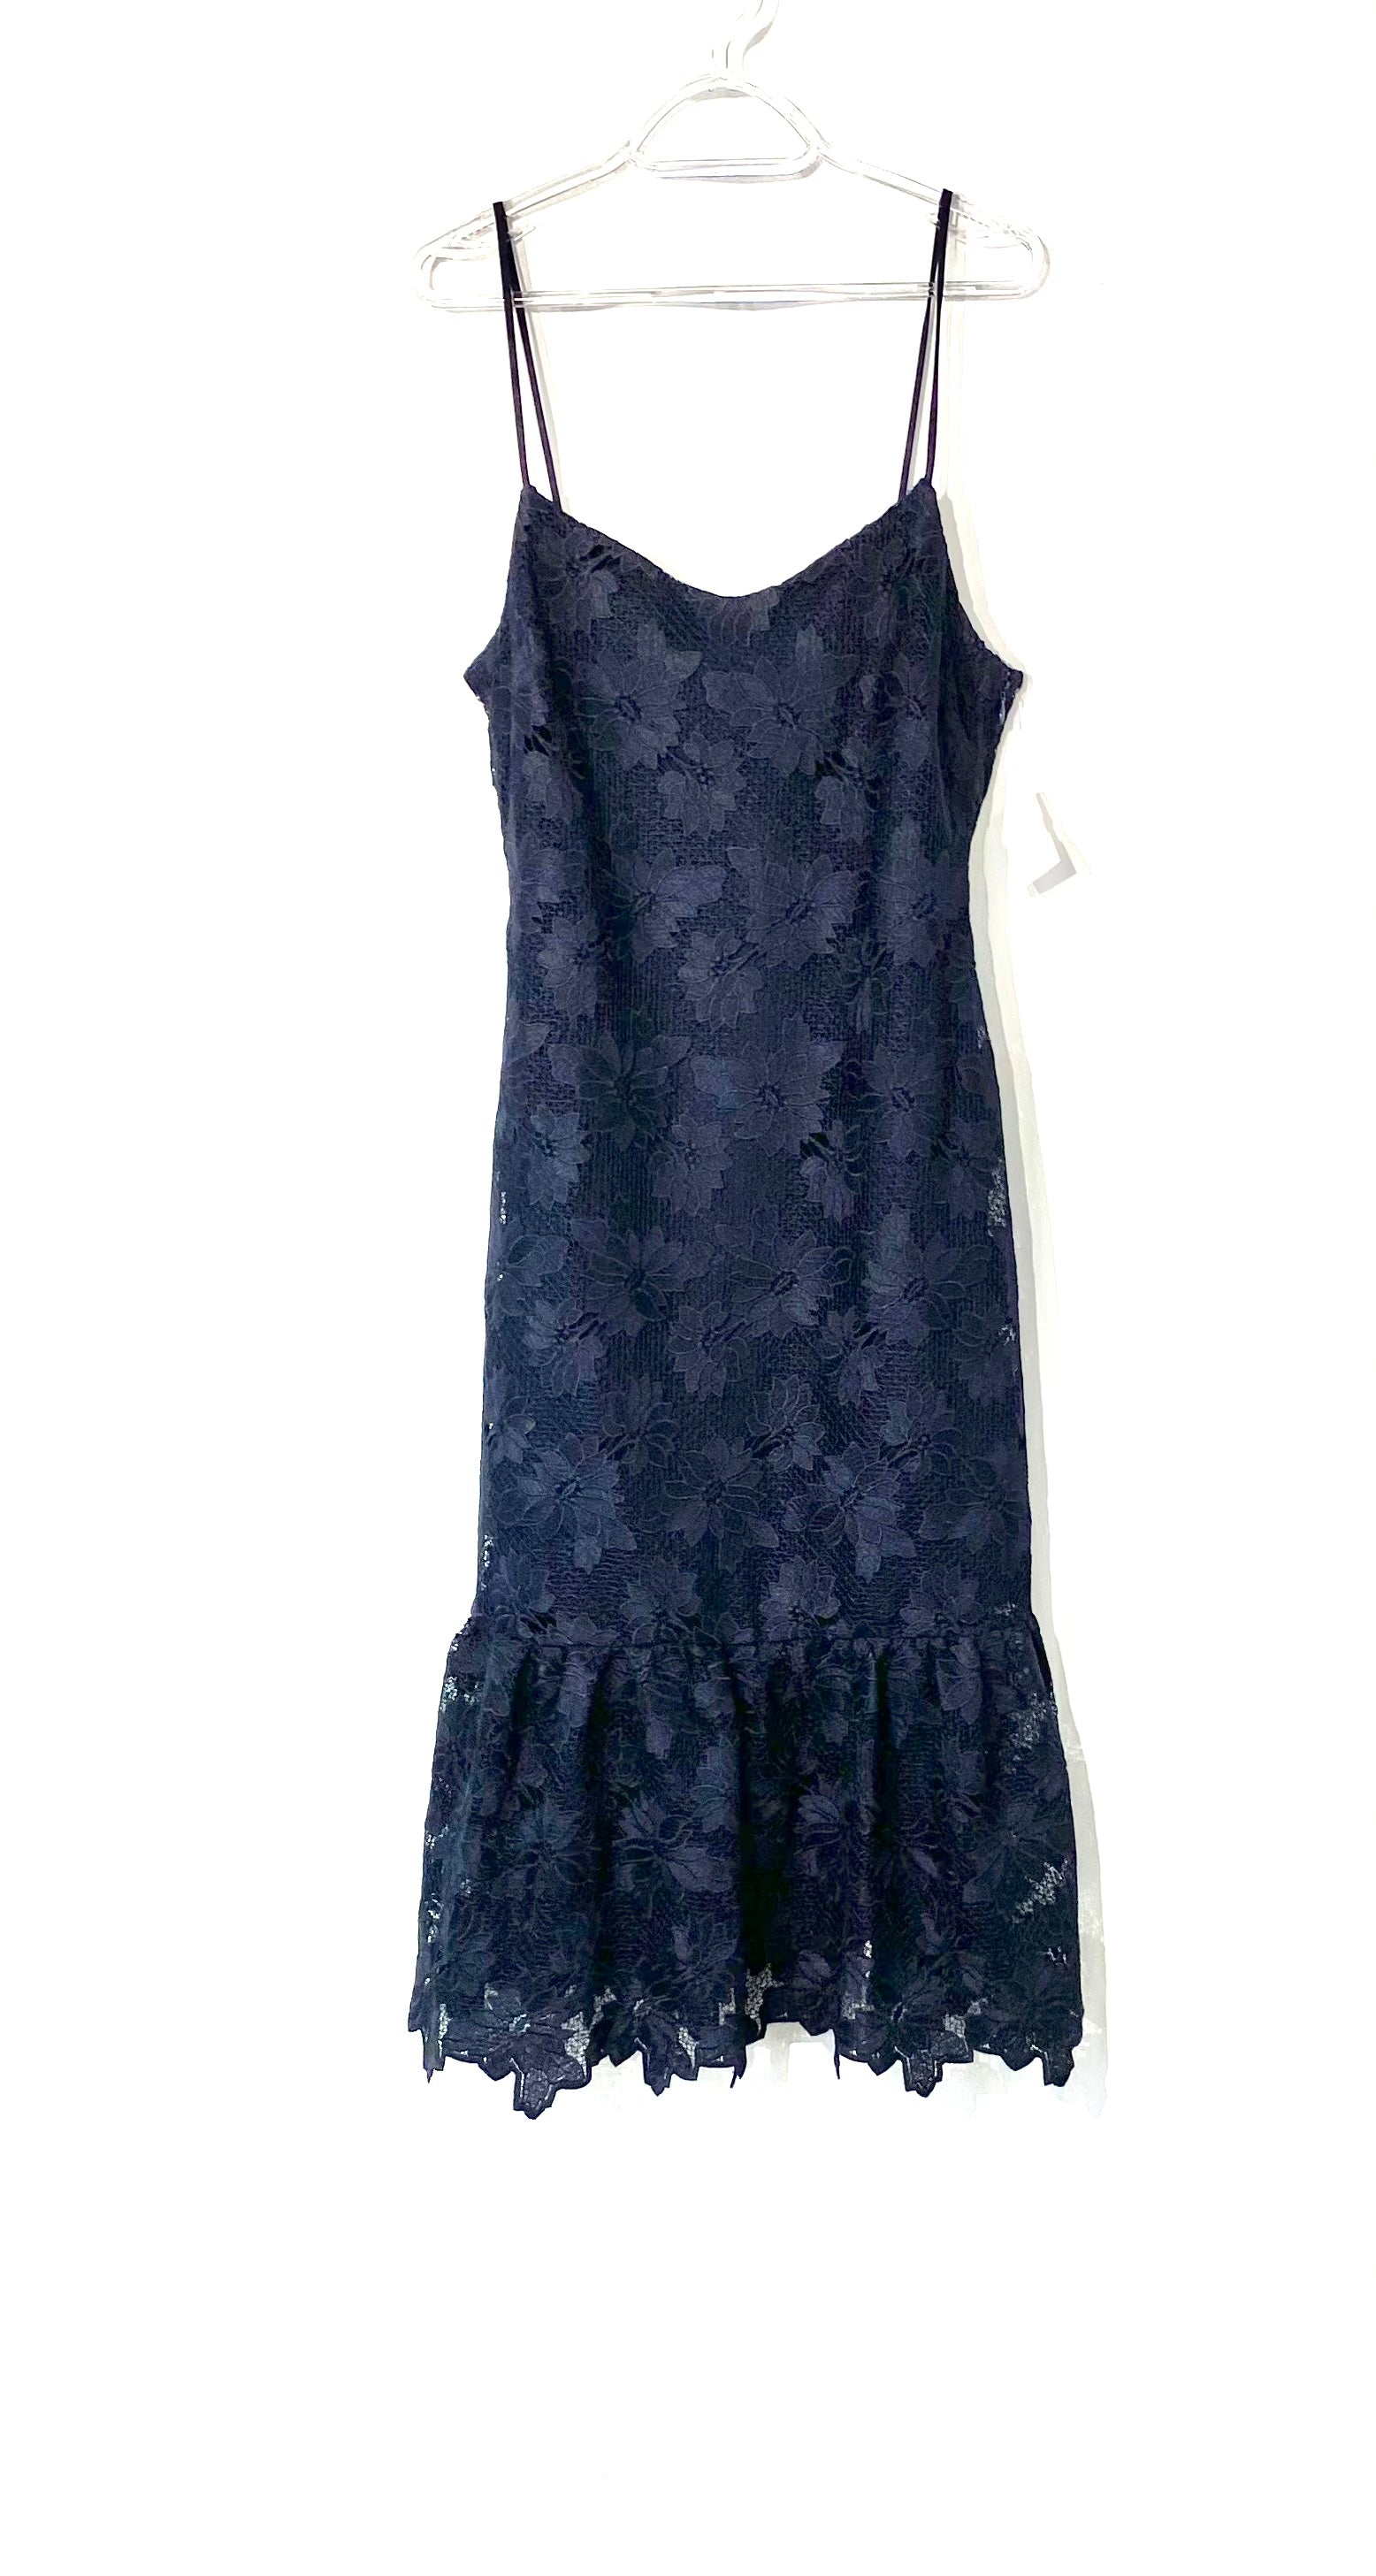 Primary Photo - BRAND: BANANA REPUBLIC <BR>STYLE: DRESS SHORT SLEEVELESS <BR>COLOR: NAVY <BR>SIZE: M <BR>SKU: 262-26241-43979